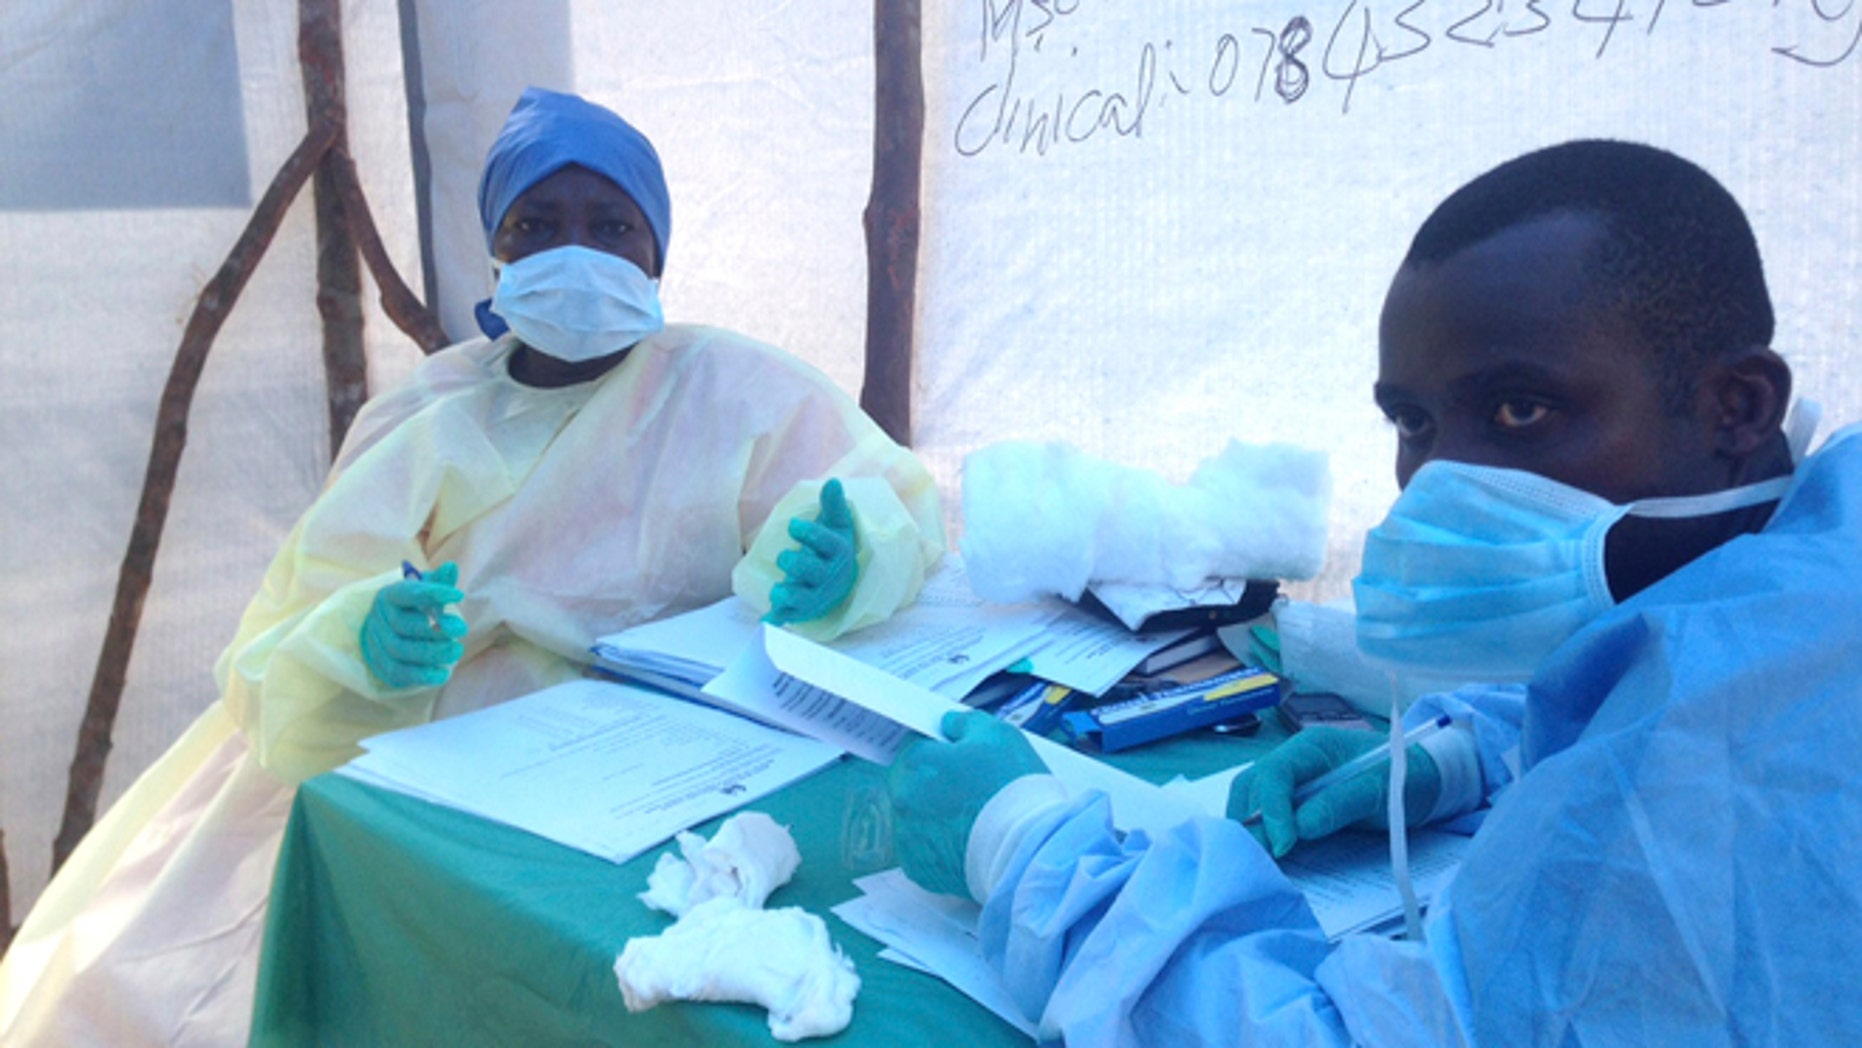 Government health workers are seen during the administration of blood tests for the Ebola virus in Kenema, Sierra Leone, June 25, 2014.